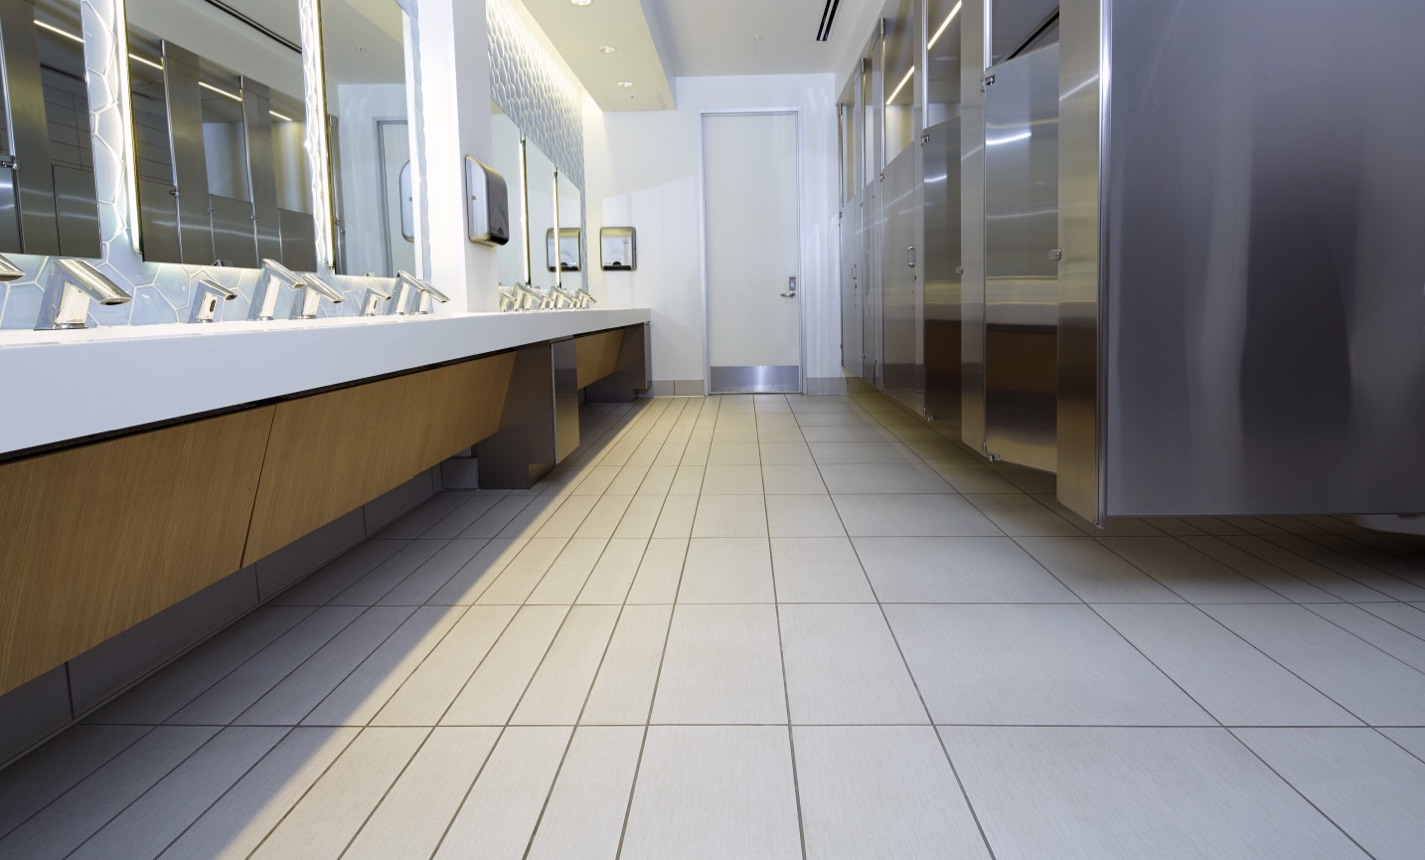 American oleans fabric inspired colorbodytm porcelain tile a unique vision came to life thanks to american olean infusions modular tiles that promote patterns using multiple sizes dailygadgetfo Choice Image